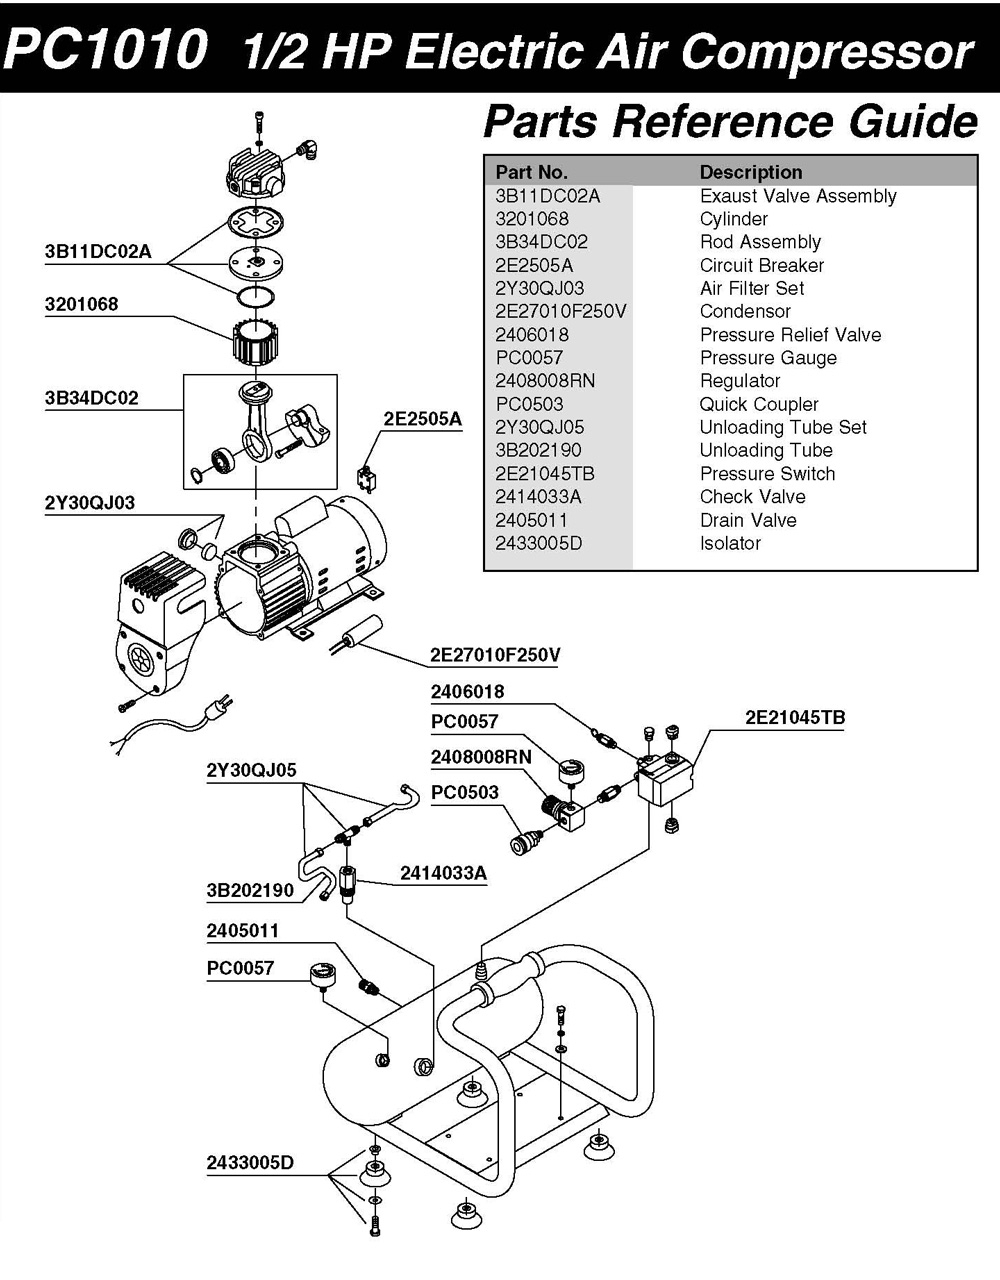 ingersoll rand 2475 wiring diagram ingersoll rand air compressor parts diagram automotive #3